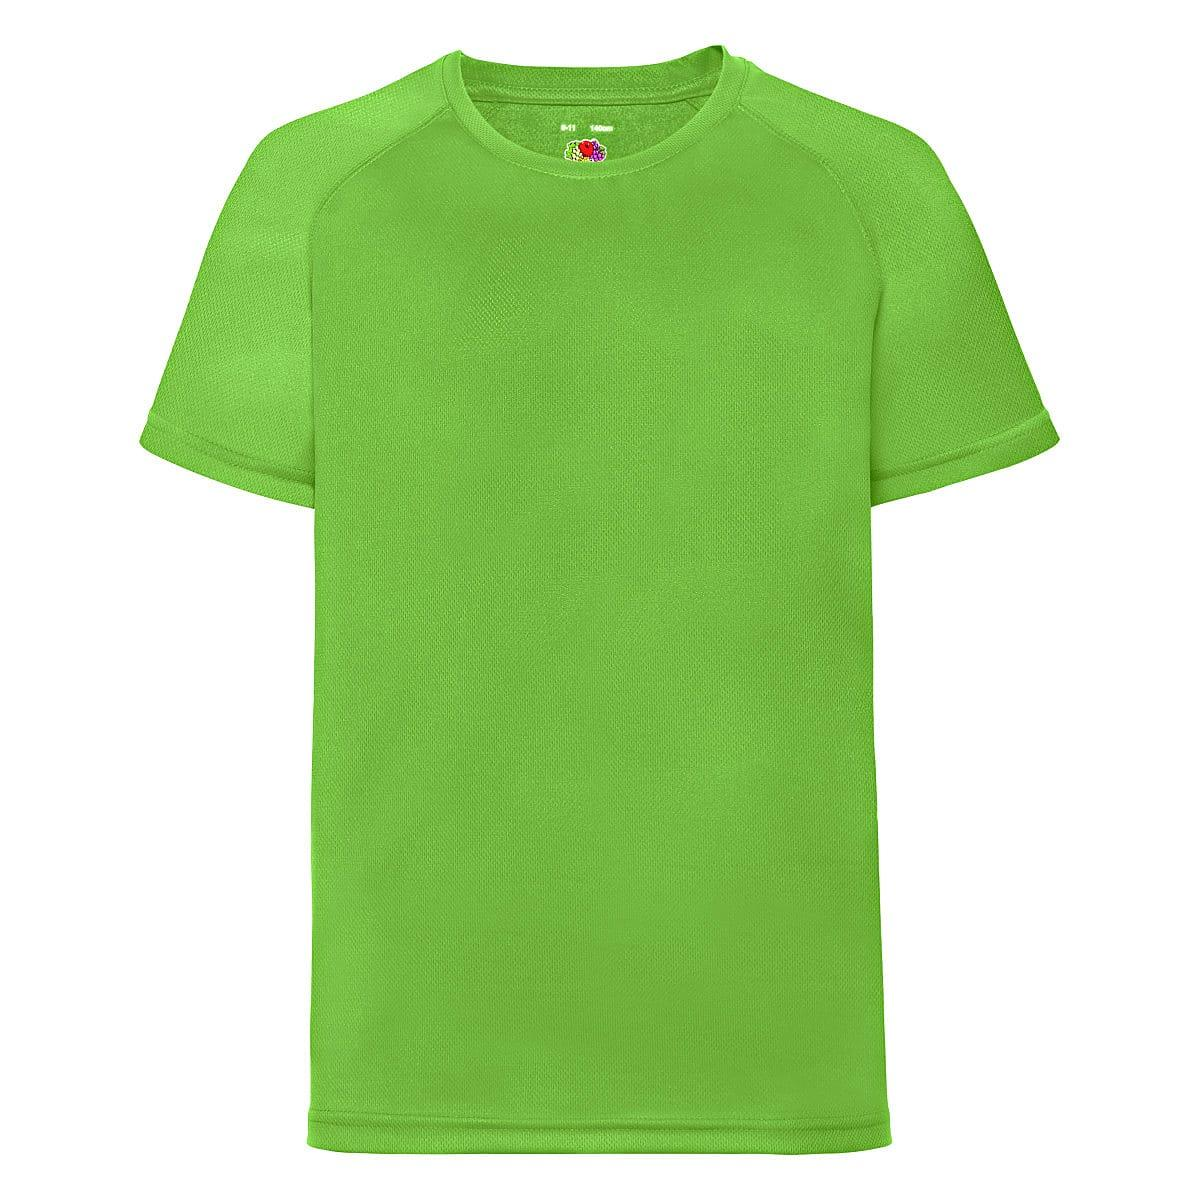 Fruit Of The Loom Childrens Kids Performance T-Shirt in Lime (Product Code: 61013)